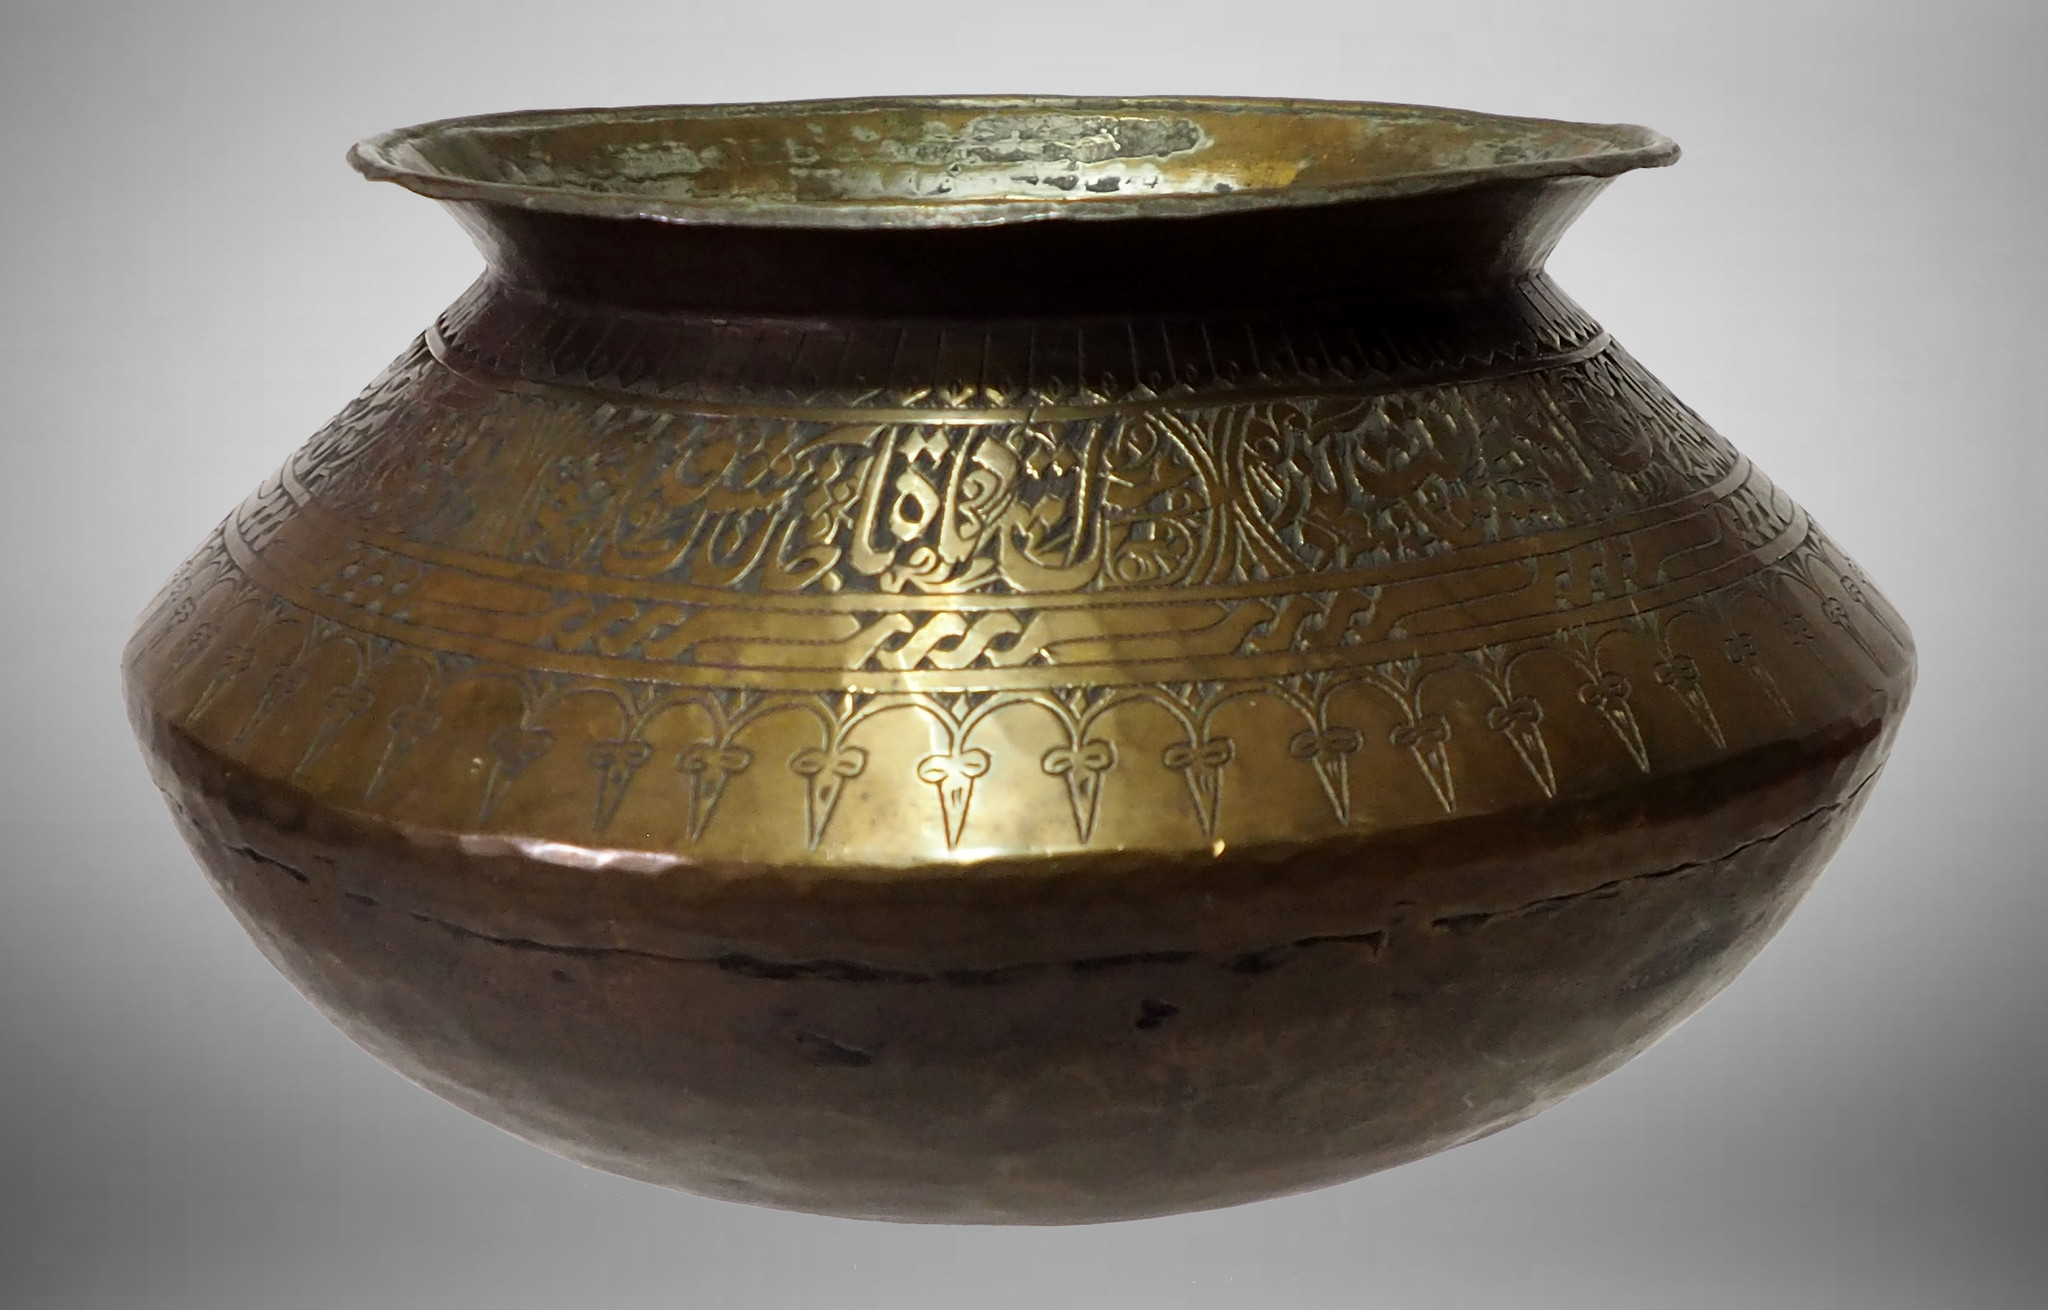 Antique Engraved Large islamic Tinned Brass Bowl, cooking pot lid pot from Afghanistan No:21A